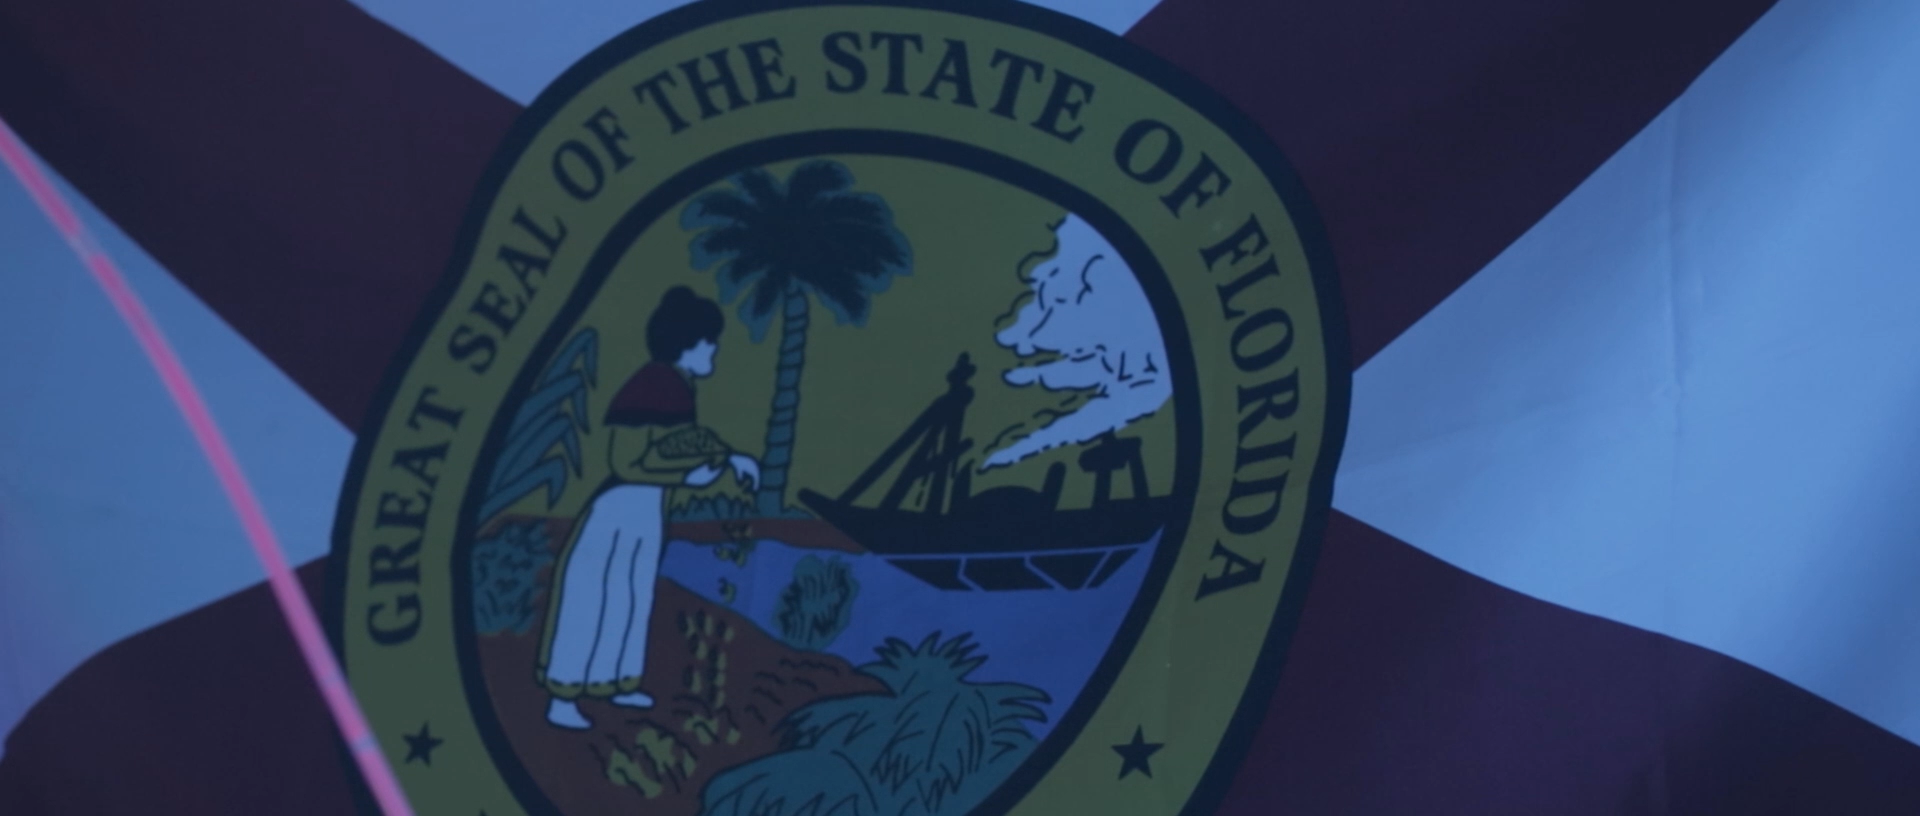 Great Seal of the State of Florida.png